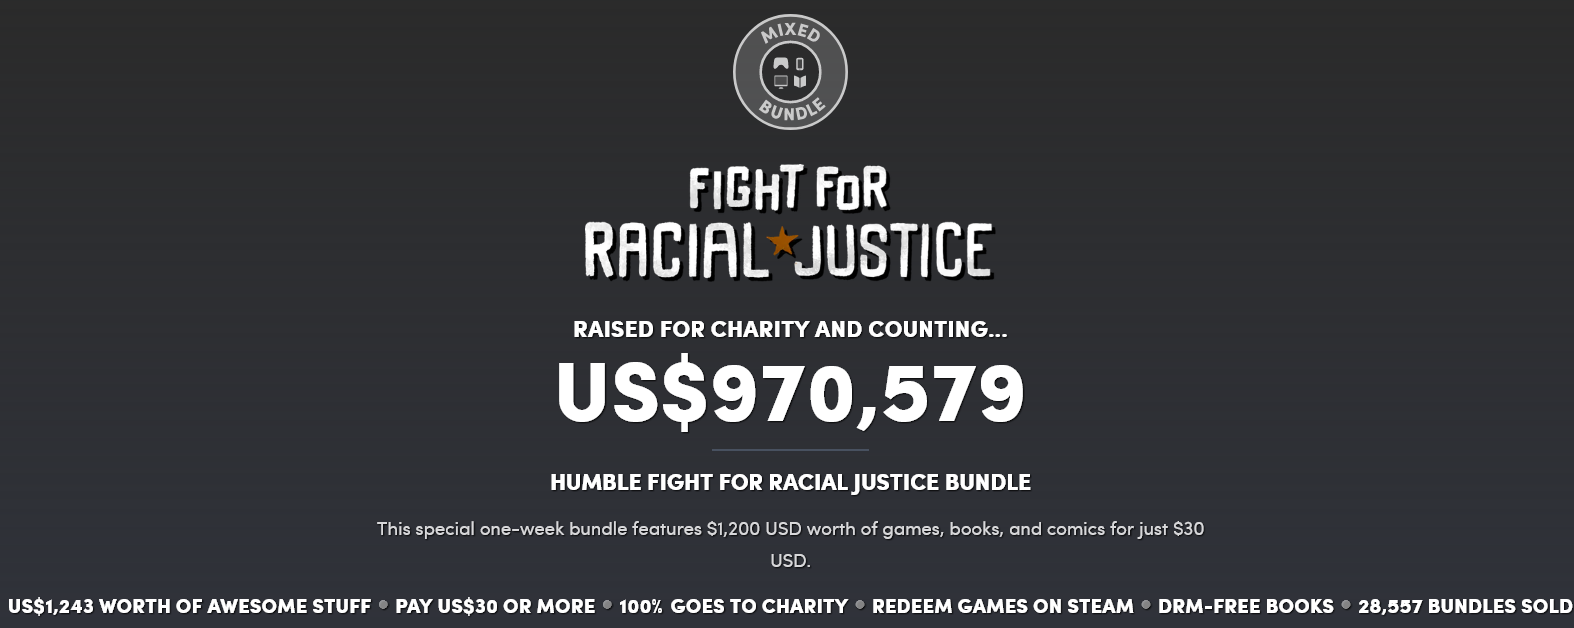 Screenshot_2020-06-17 Humble Fight for Racial Justice Bundle.png